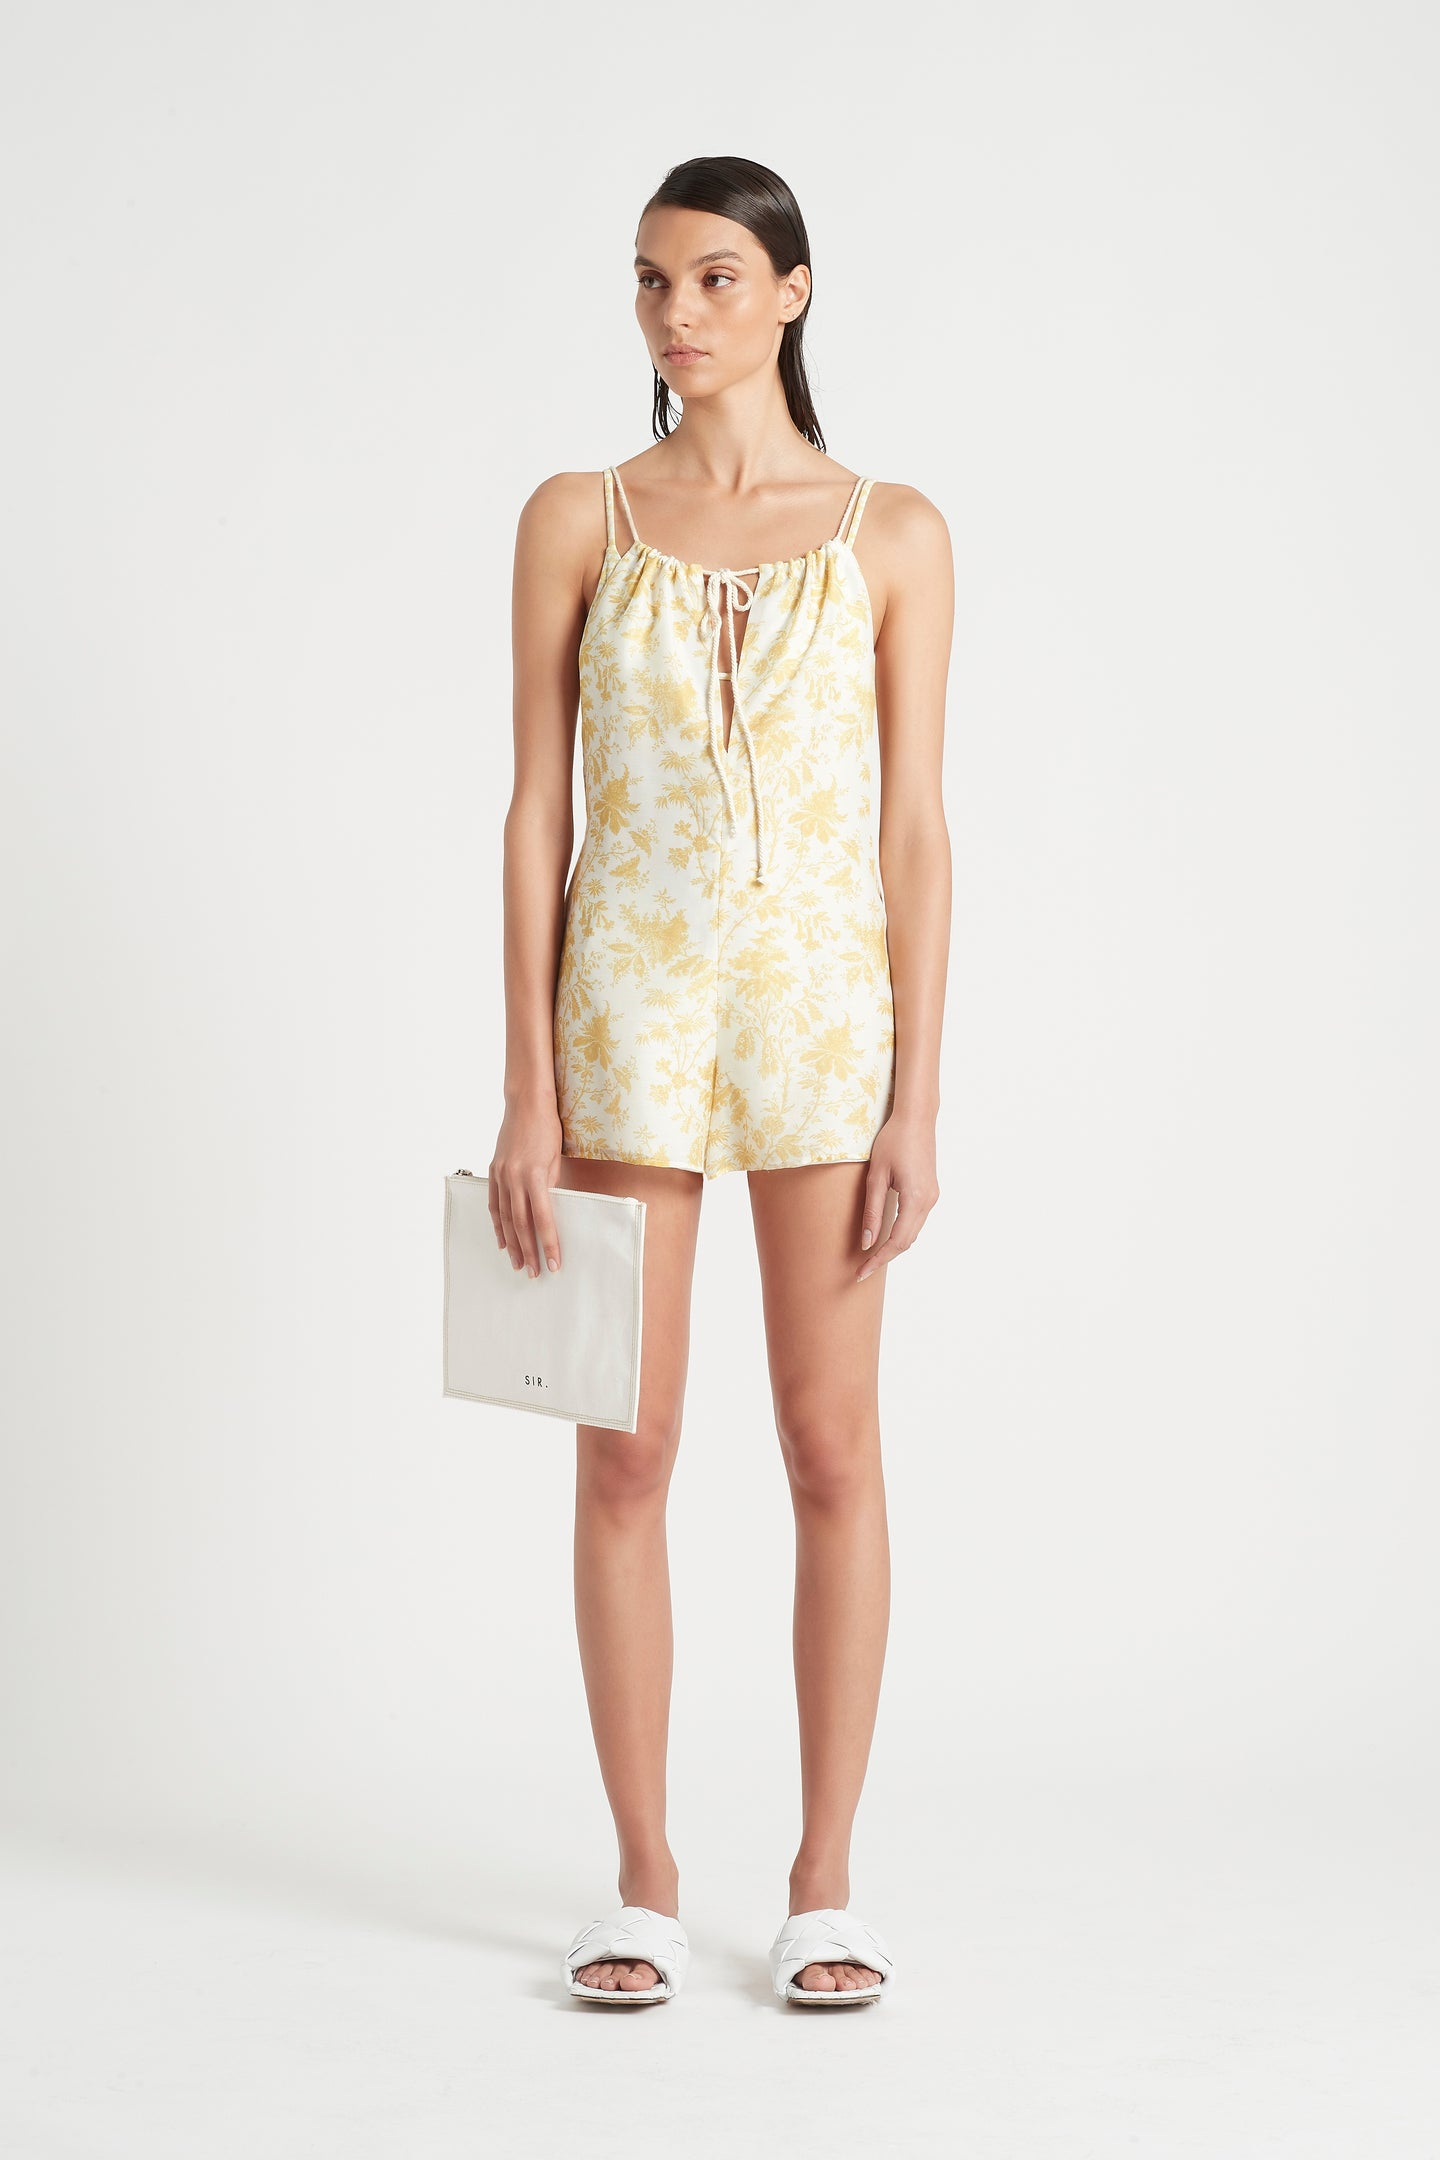 SIR the label CLEMENTINE ROMPER IVORY CLEMENTINE PRINT